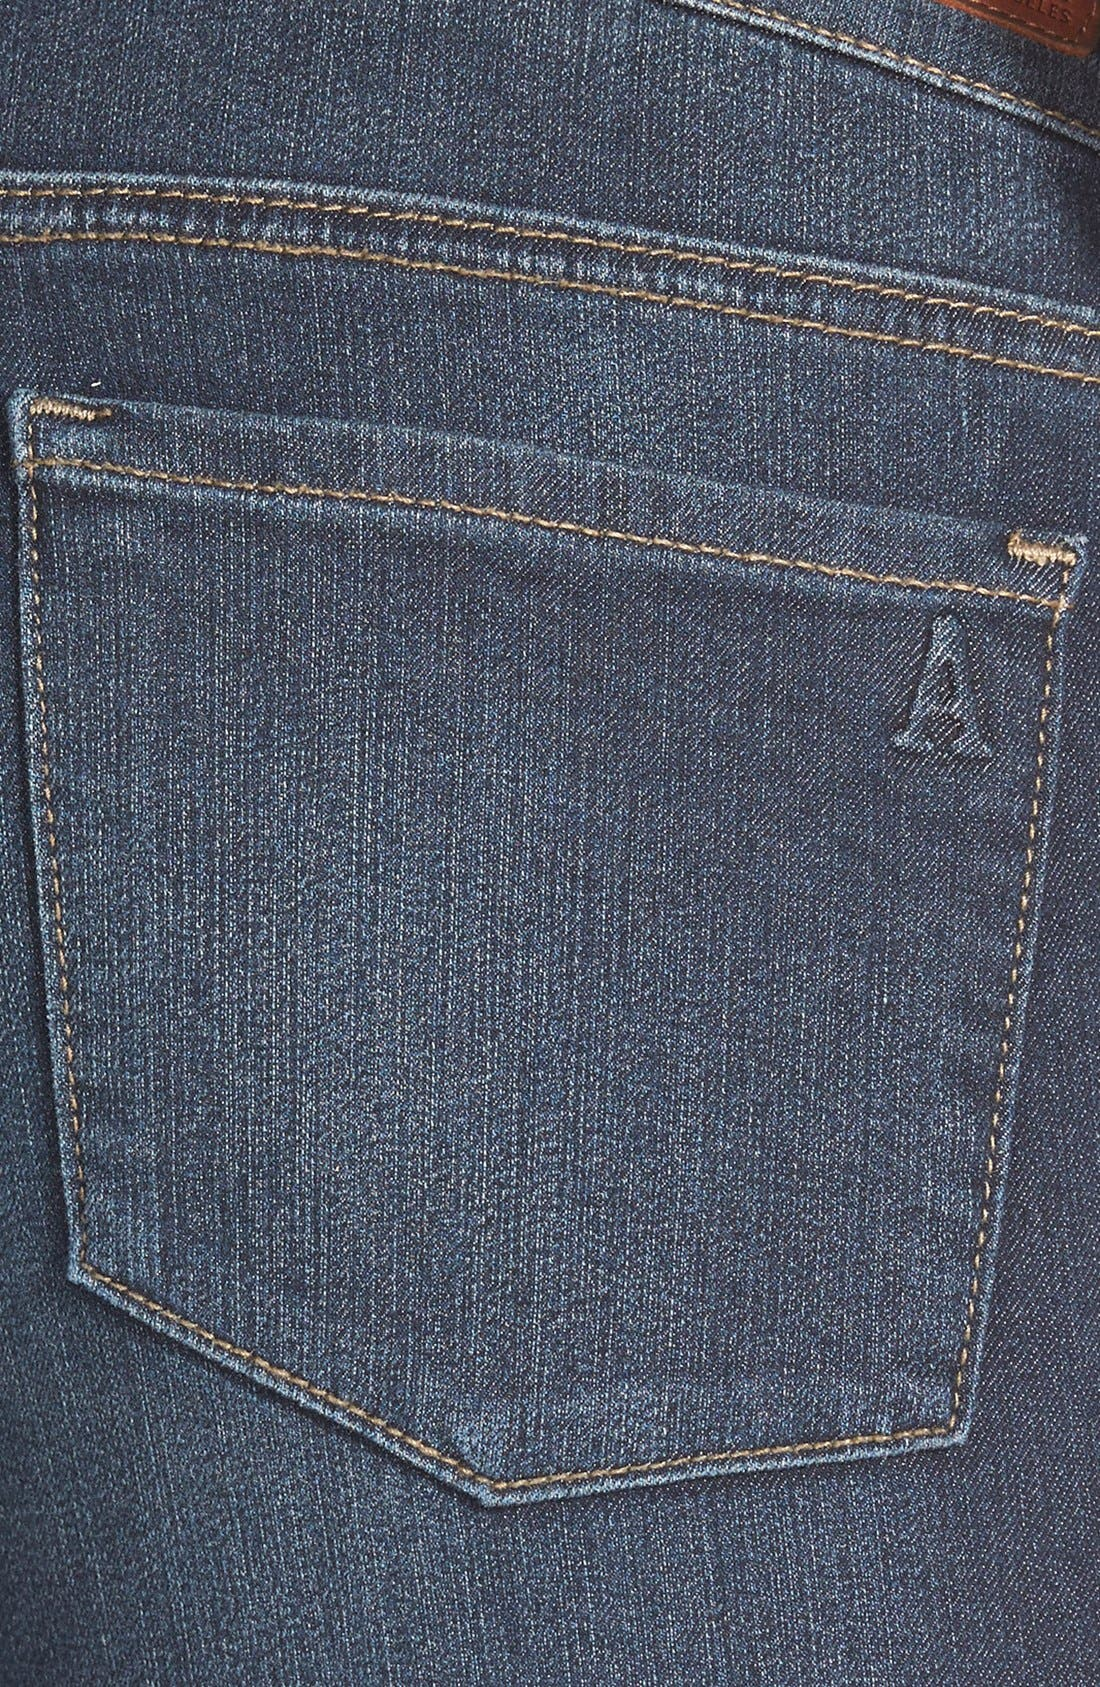 Alternate Image 4  - Articles of Society 'Sarah' Skinny Jeans (Blue Moon)